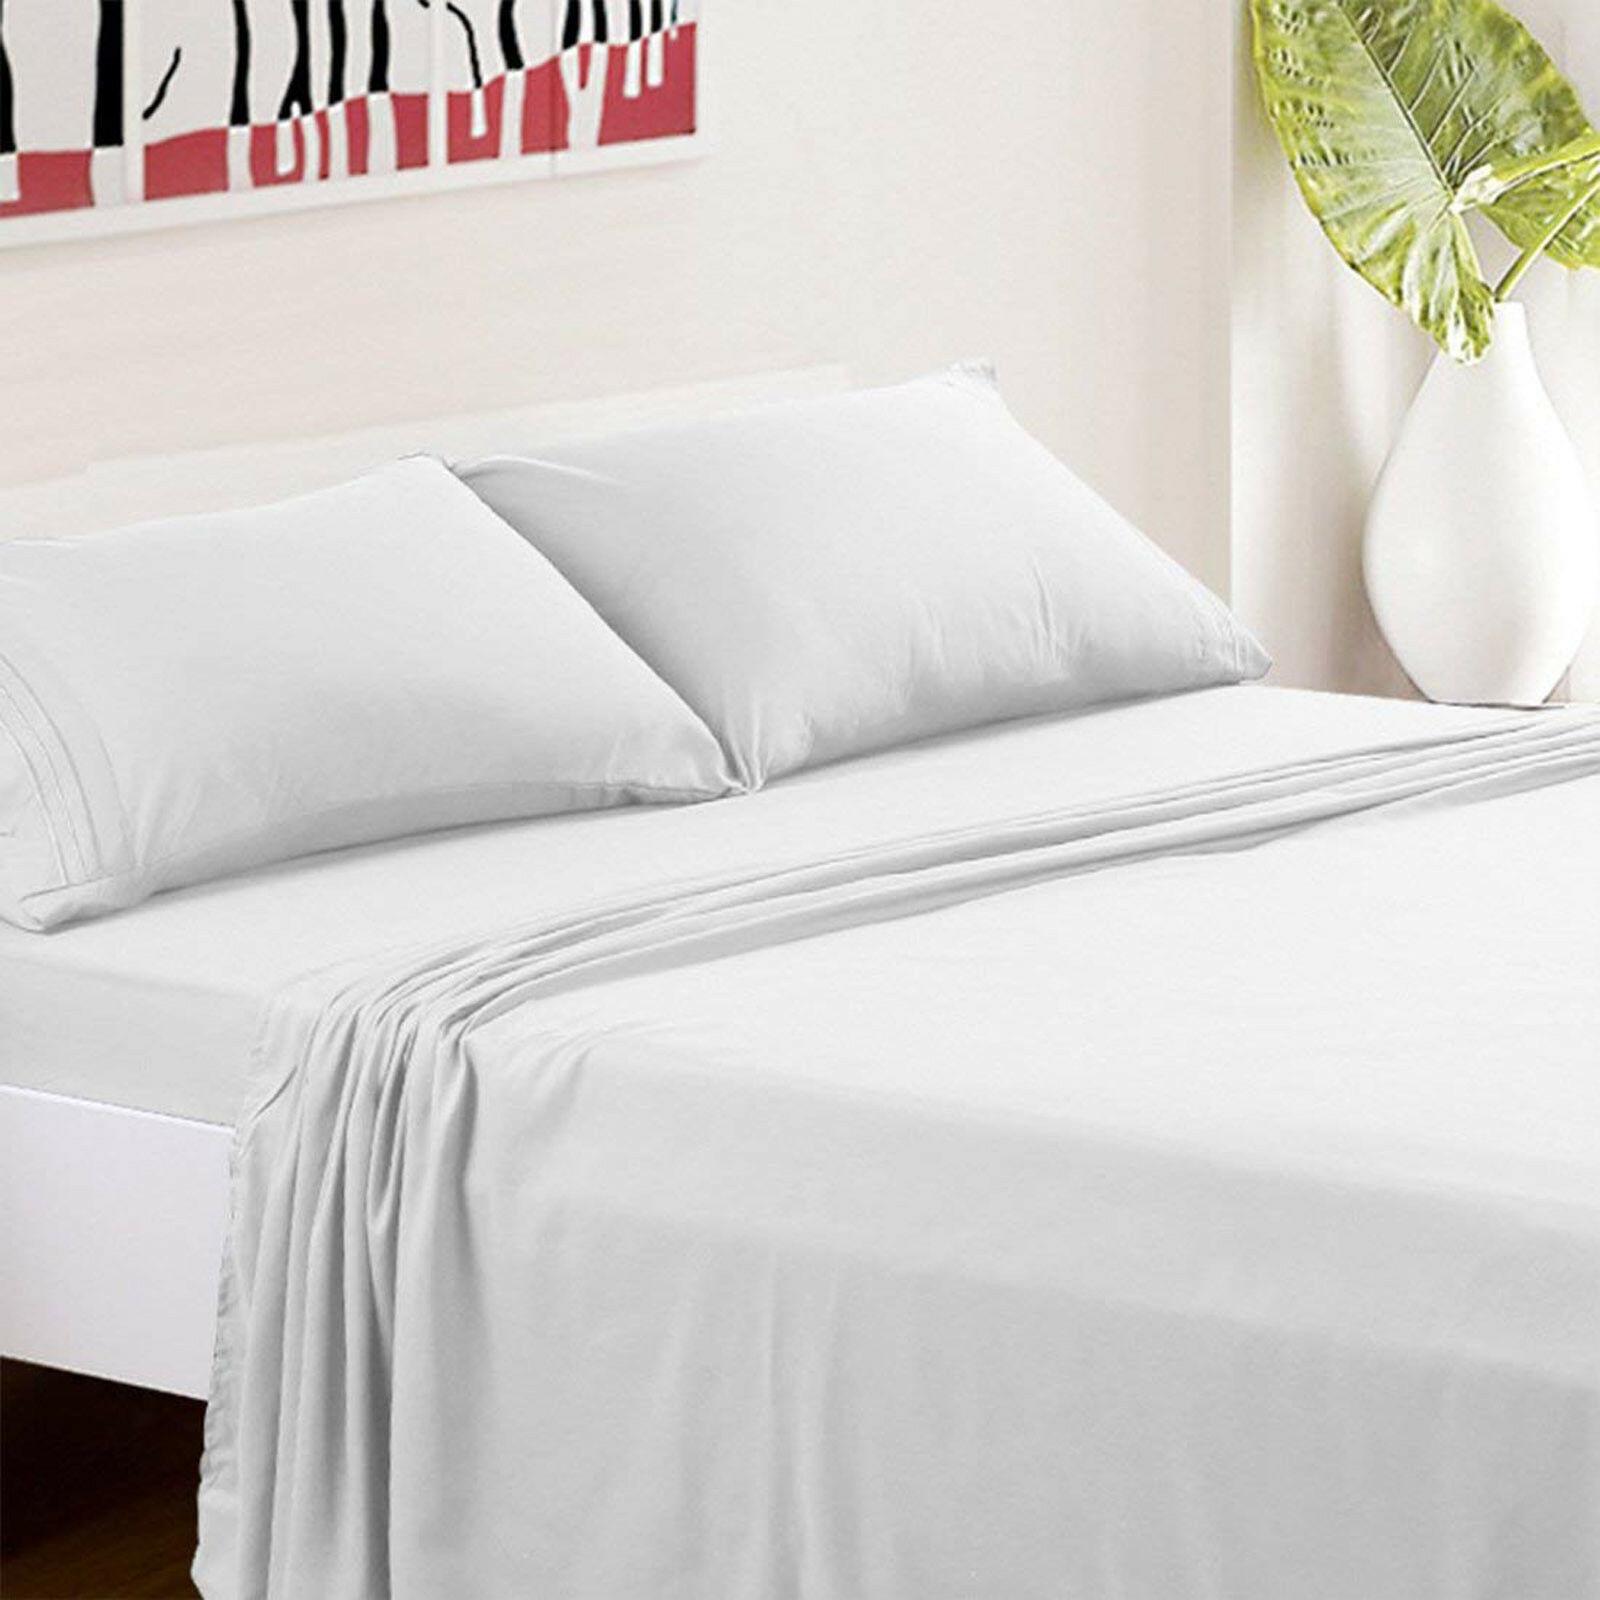 4 Piece Hotel Luxury Soft Premium Wrinkle&Fade Resistant Bedding Bed Sheets Set